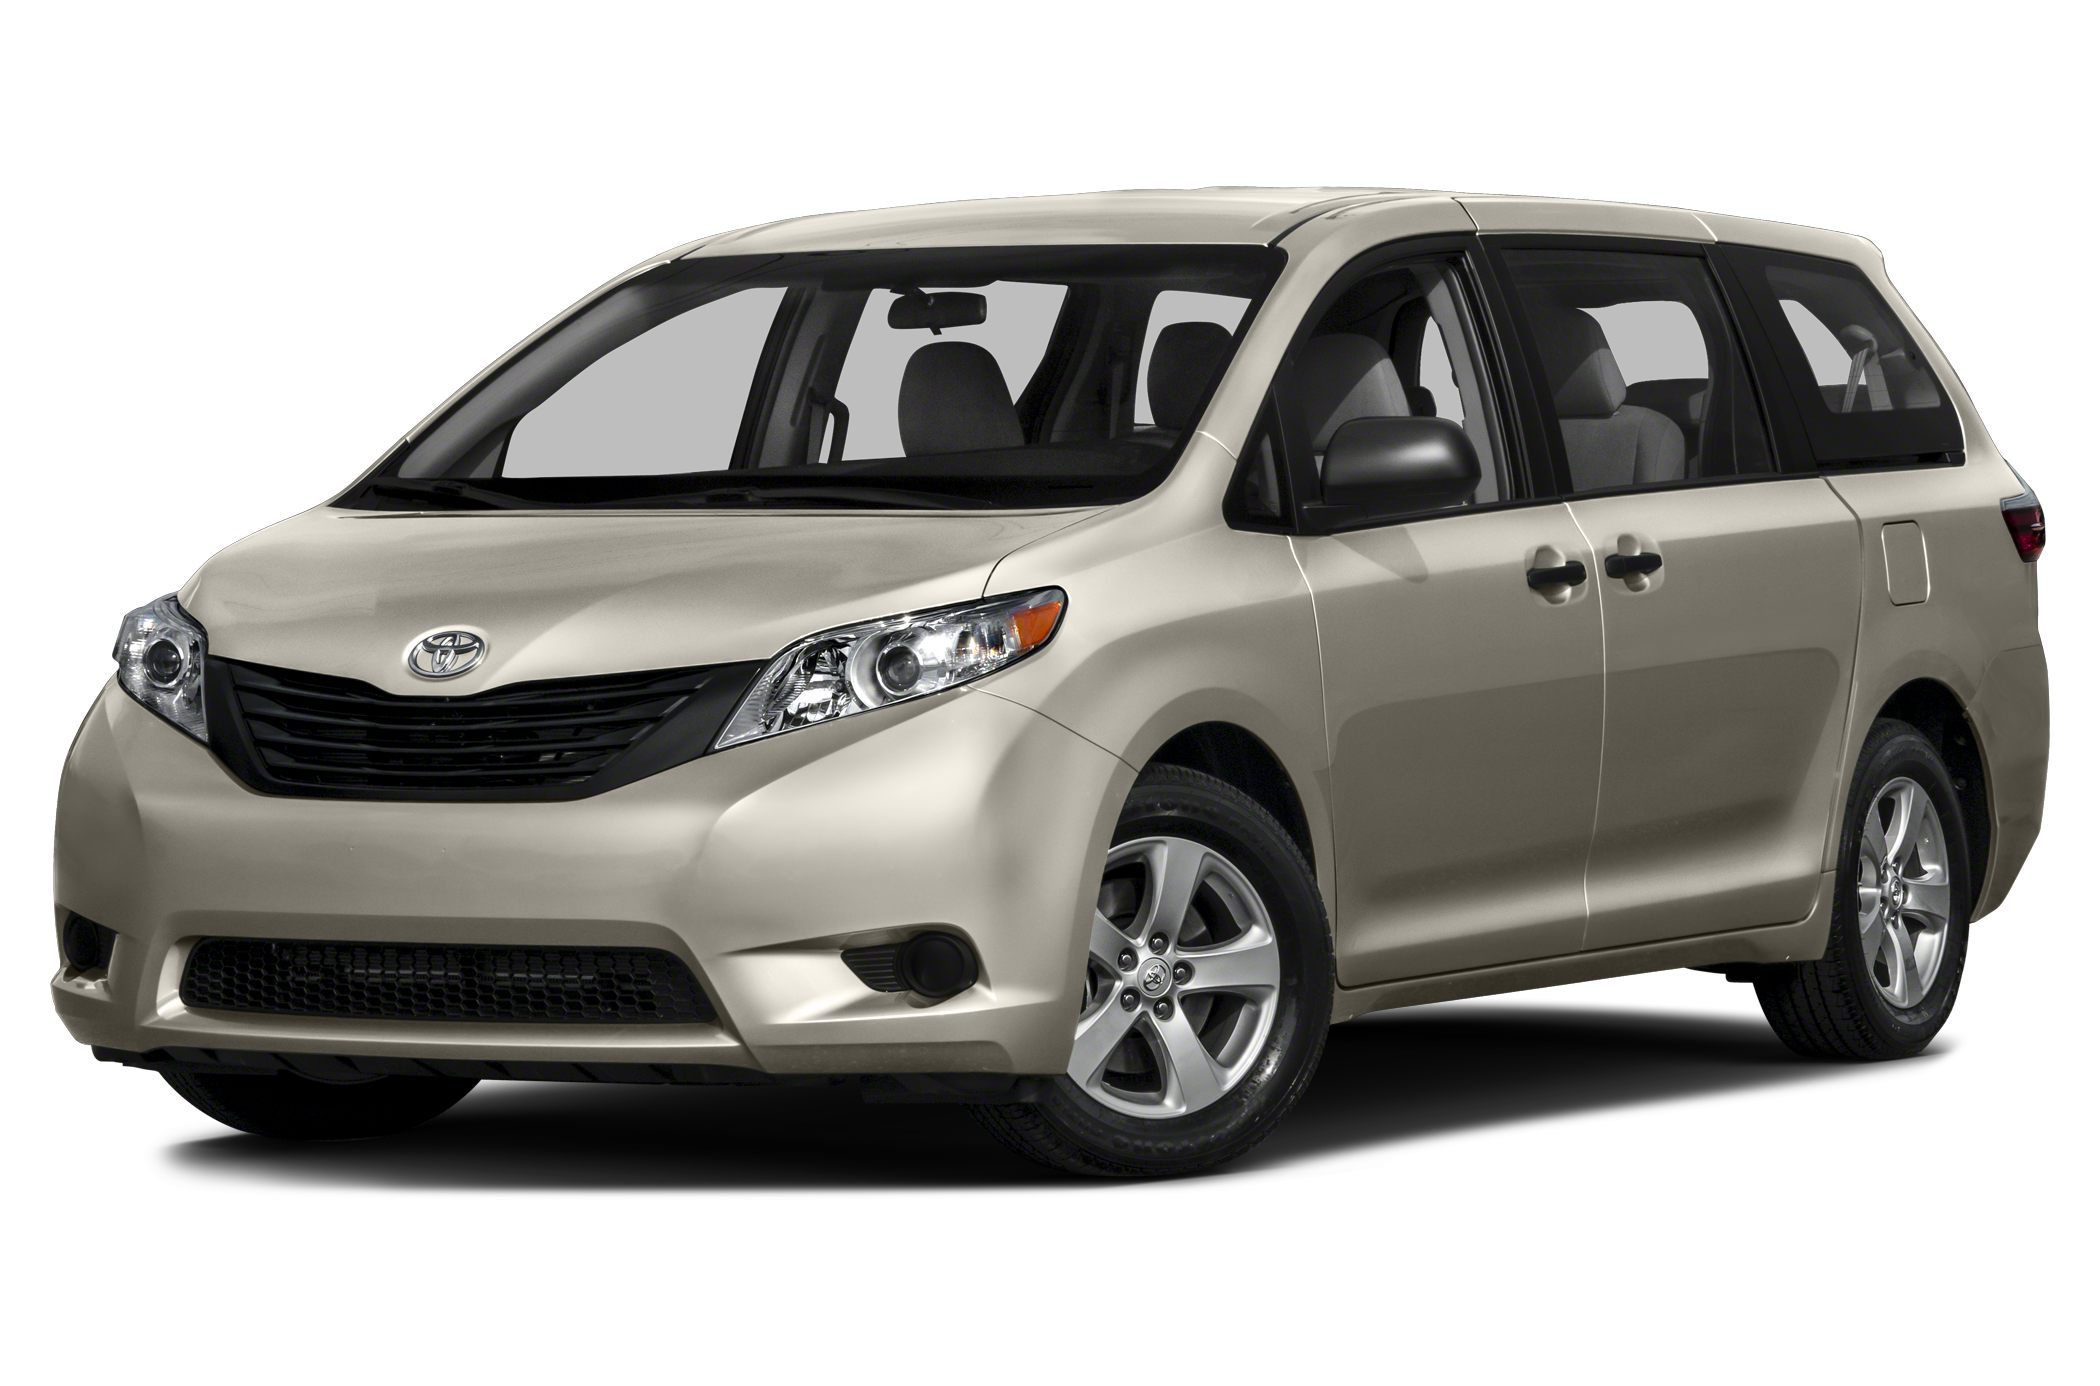 2015 Toyota Sienna LE Grab a score on this 2015 Toyota Sienna LE while we have it Roomy yet agile